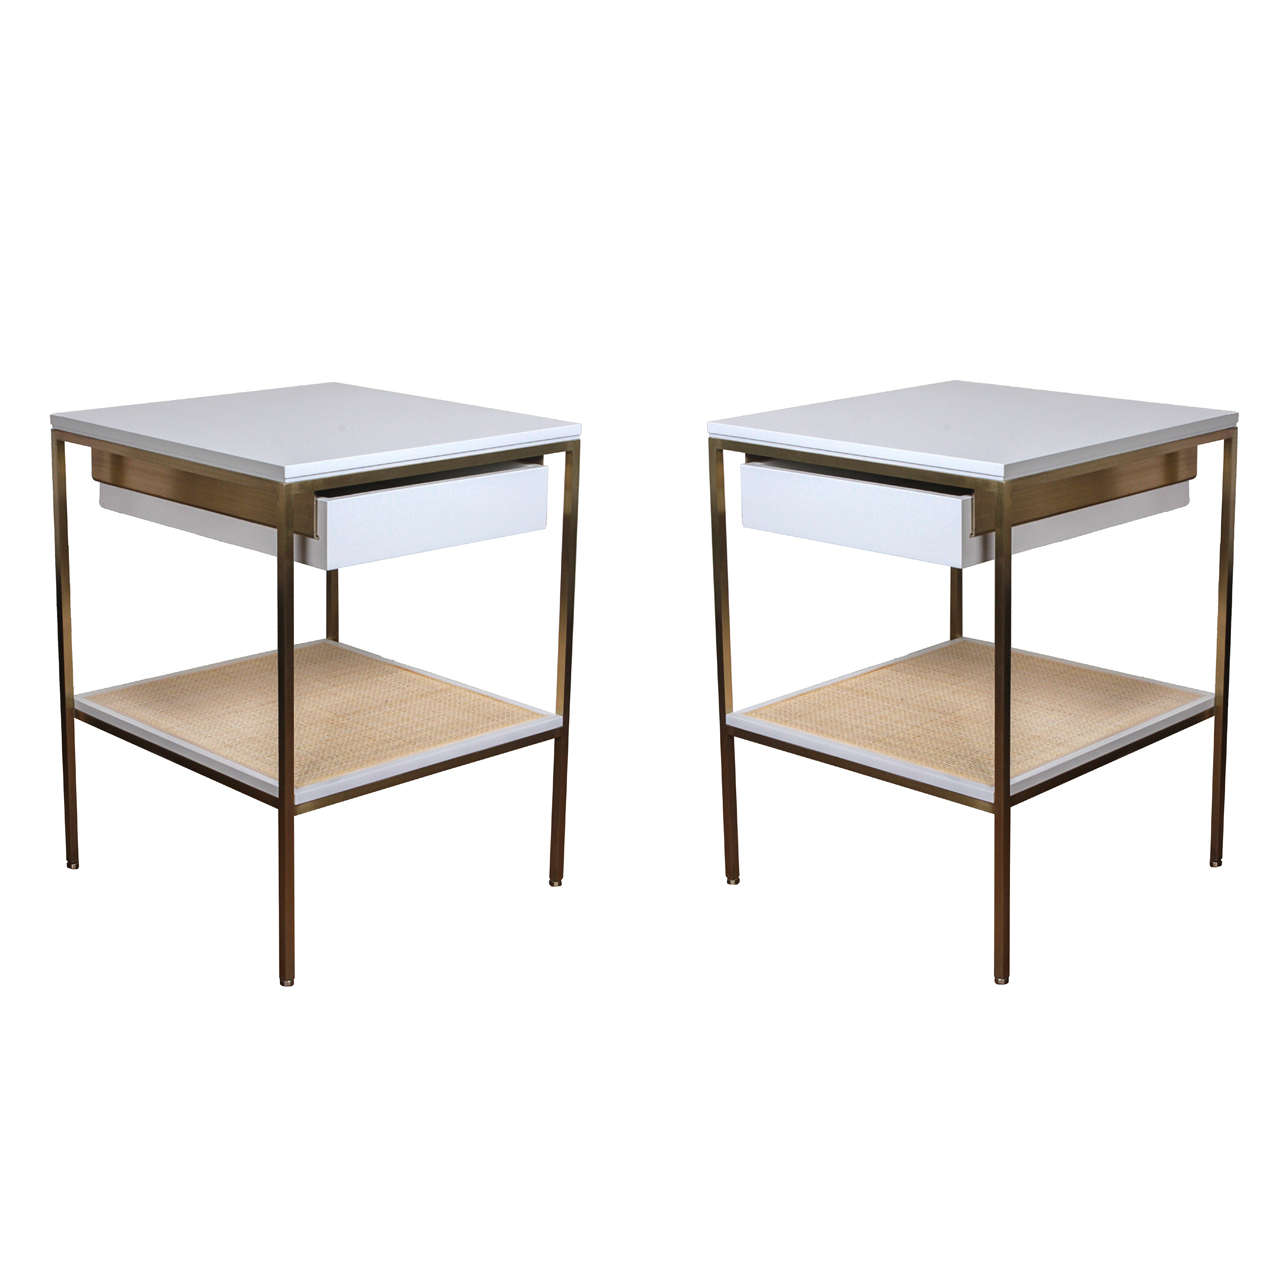 Bedside Tables with Brass Frames, White Lacquered Tops/Drawers and Cane Shelves